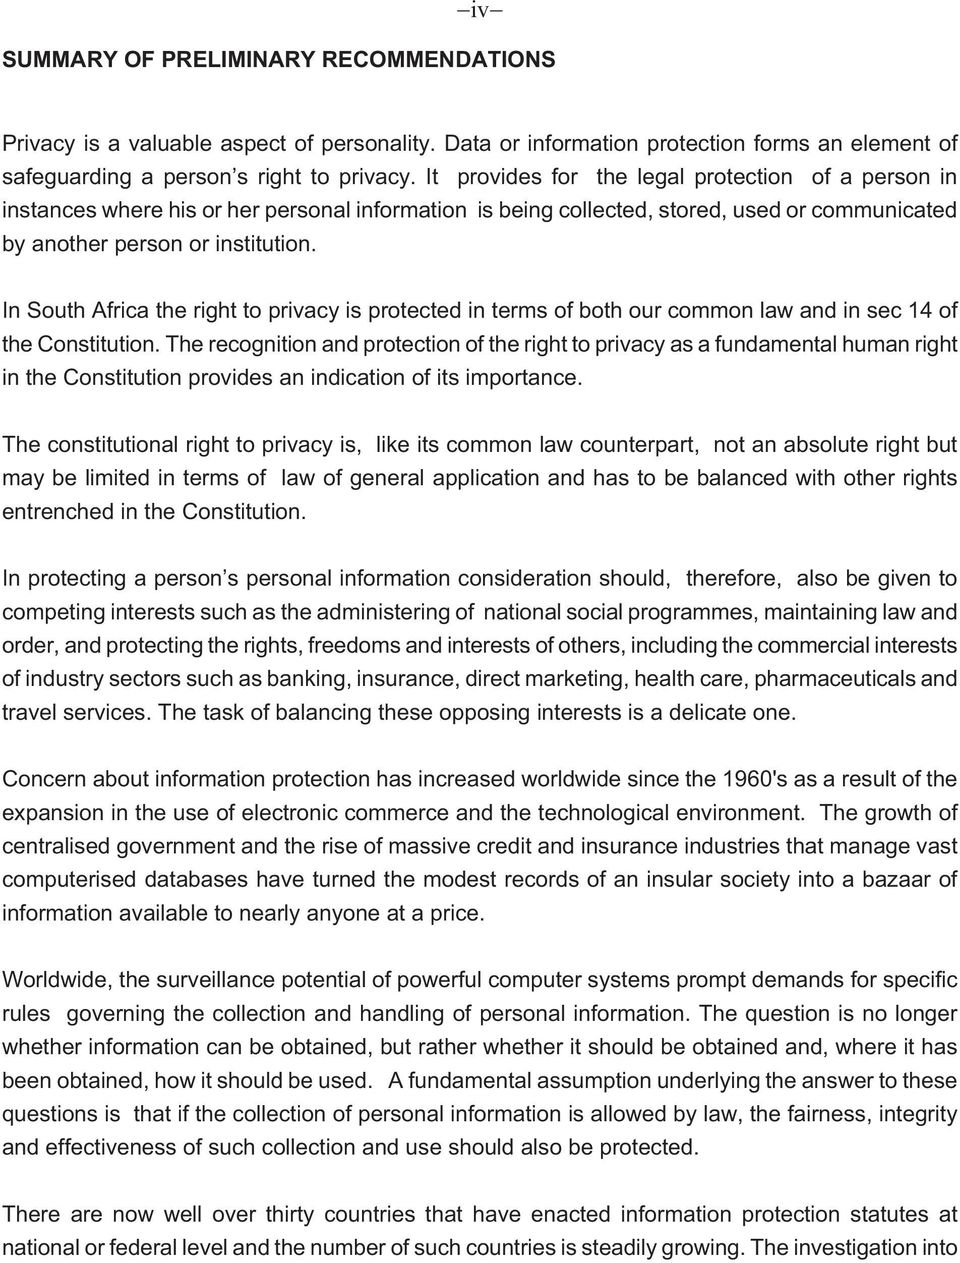 In South Africa the right to privacy is protected in terms of both our common law and in sec 14 of the Constitution.